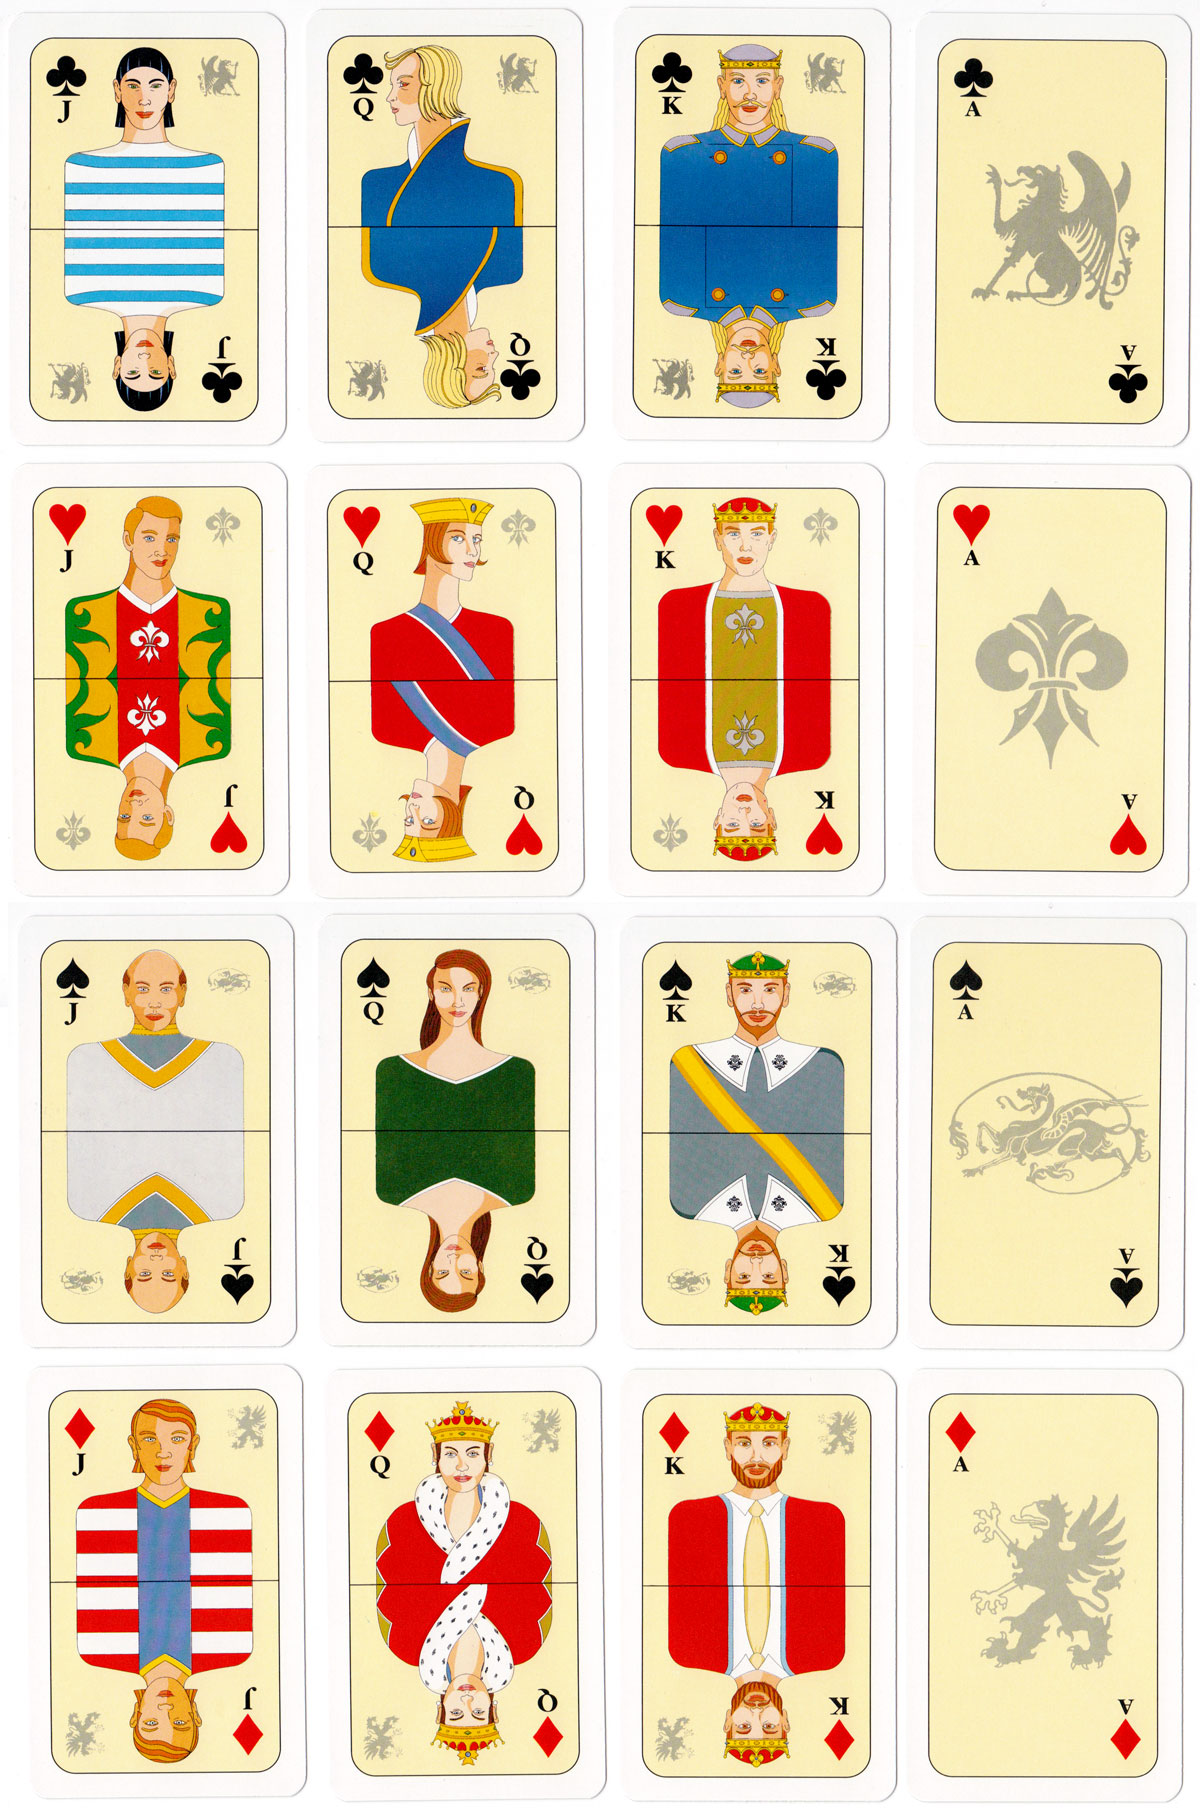 VR-VISA playing cards from Finland, date before 2009